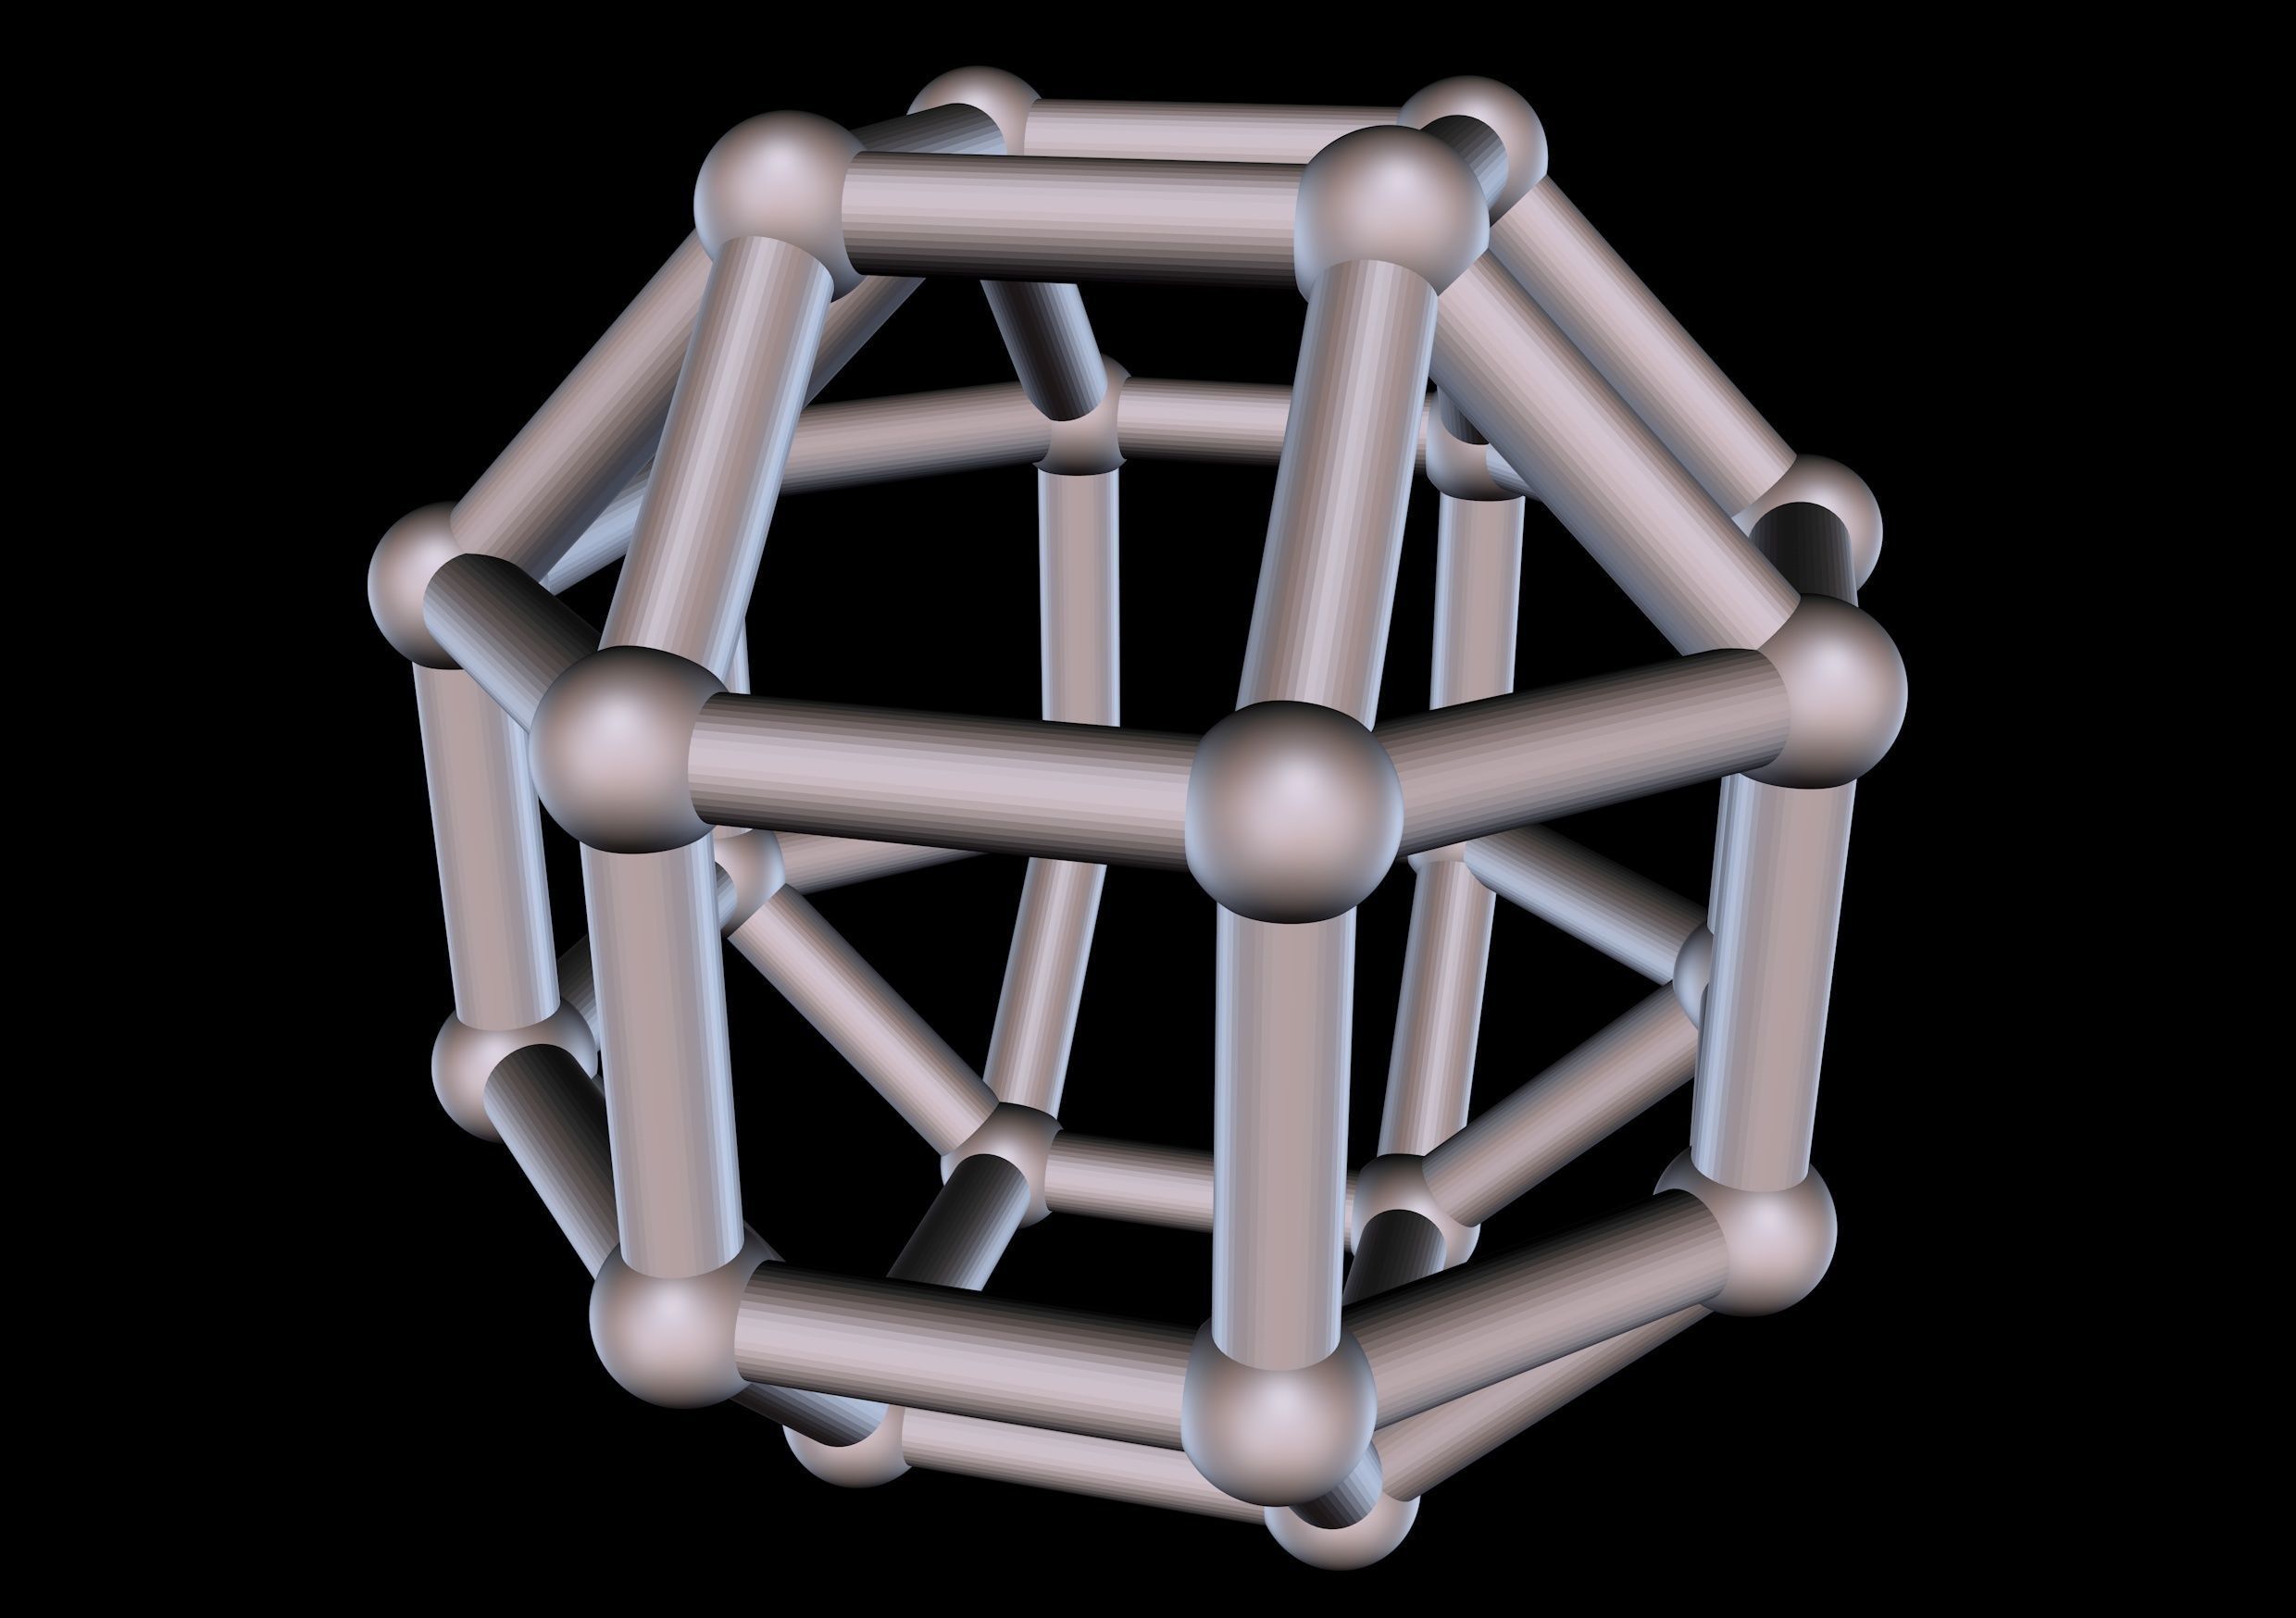 032 Mathart-Archimedean Solids-Small Rhombicuboctahedron 02-10cm